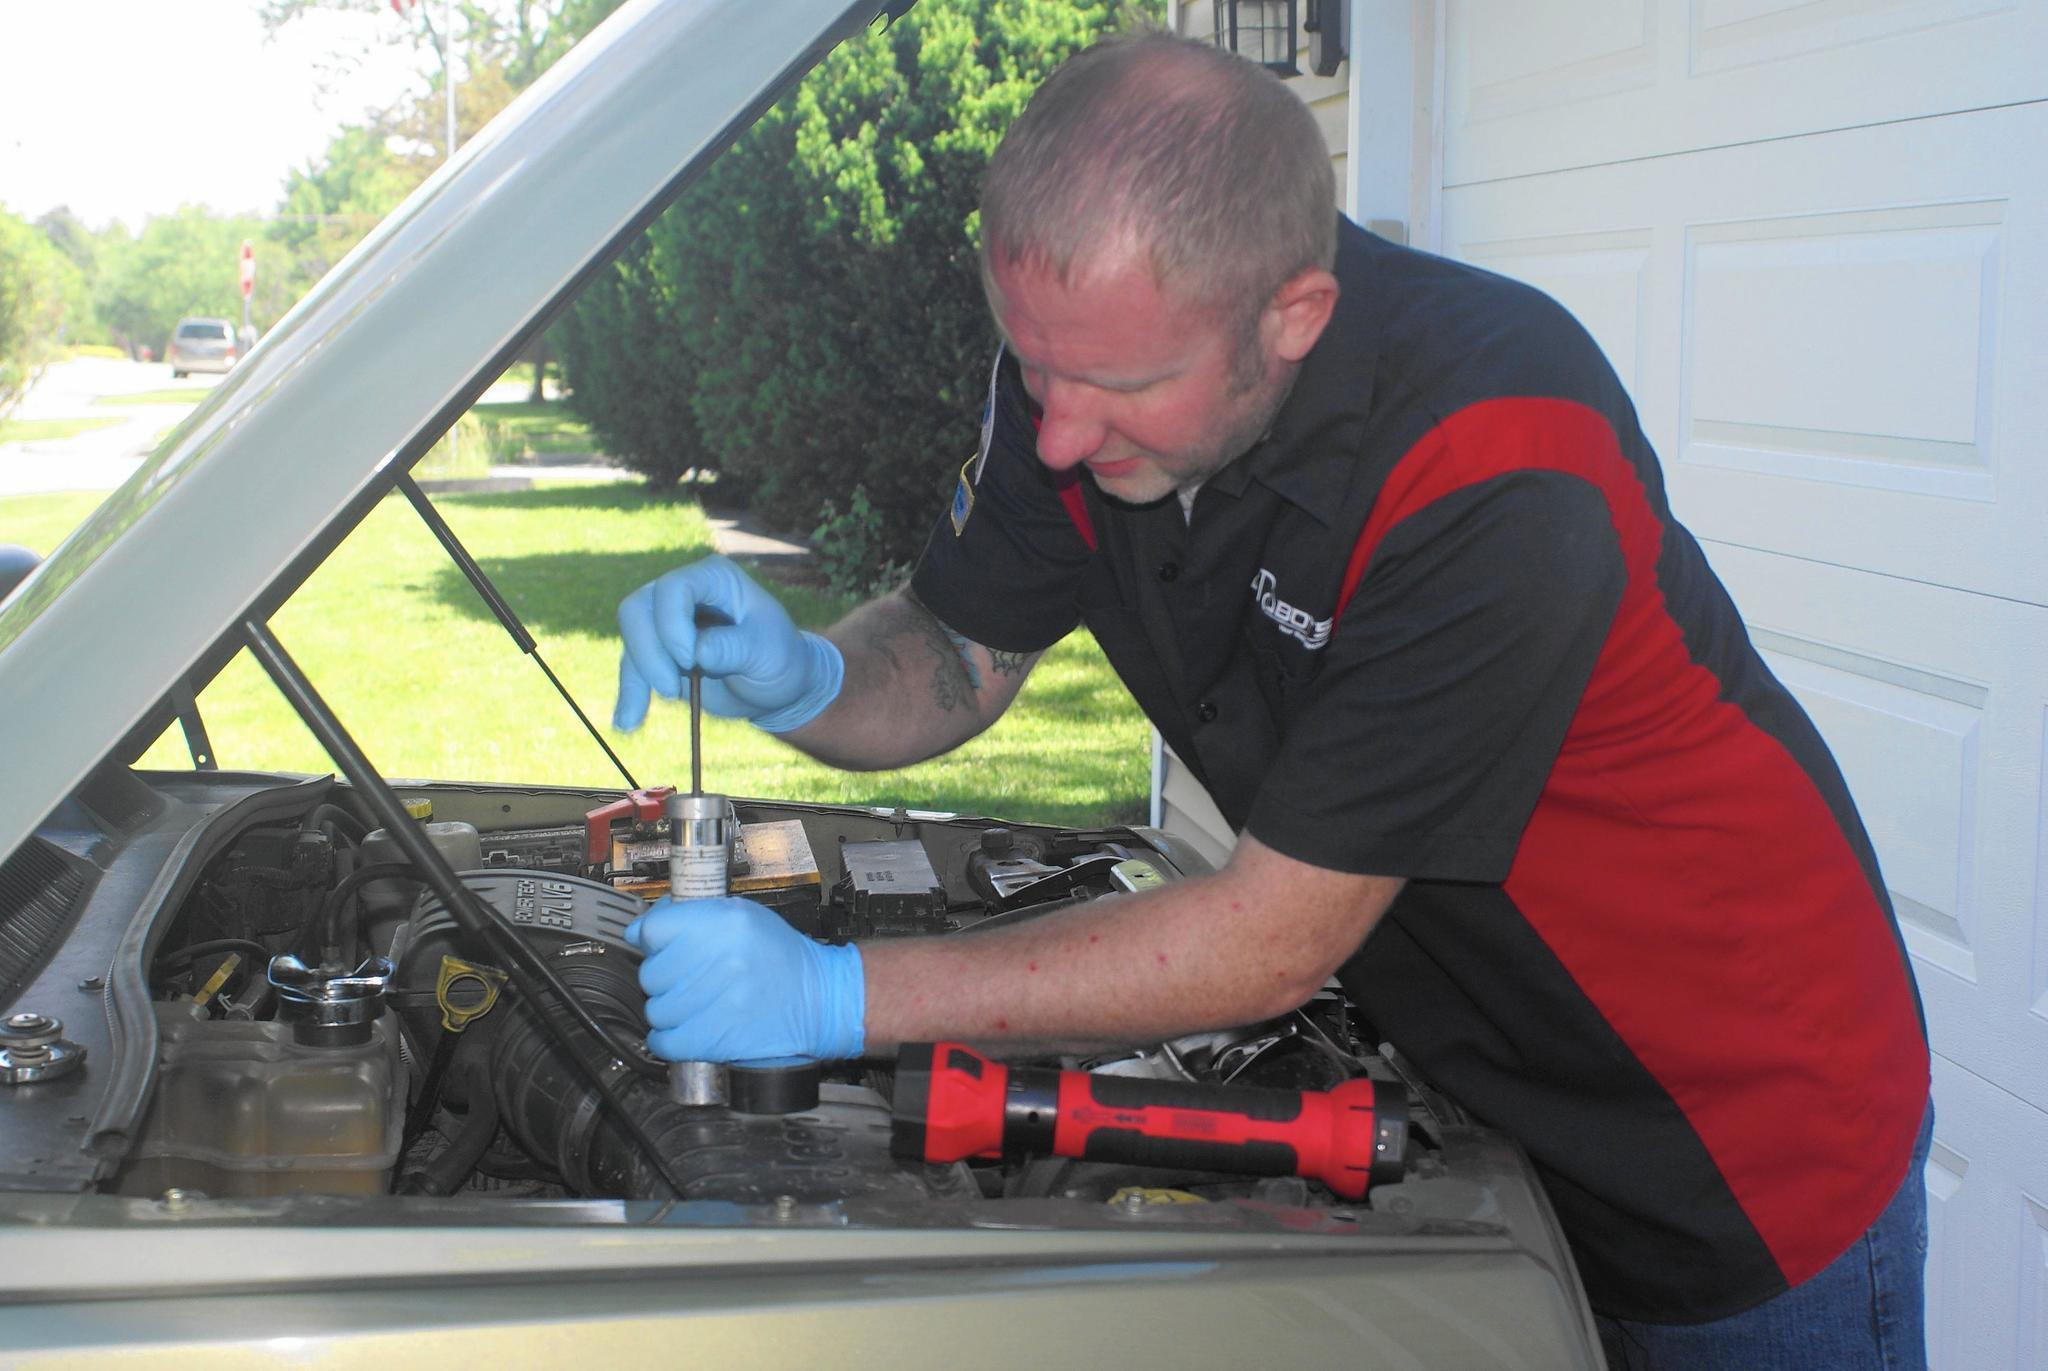 mobile mechanics diagnose and fix cars at owners u0026 39  homes